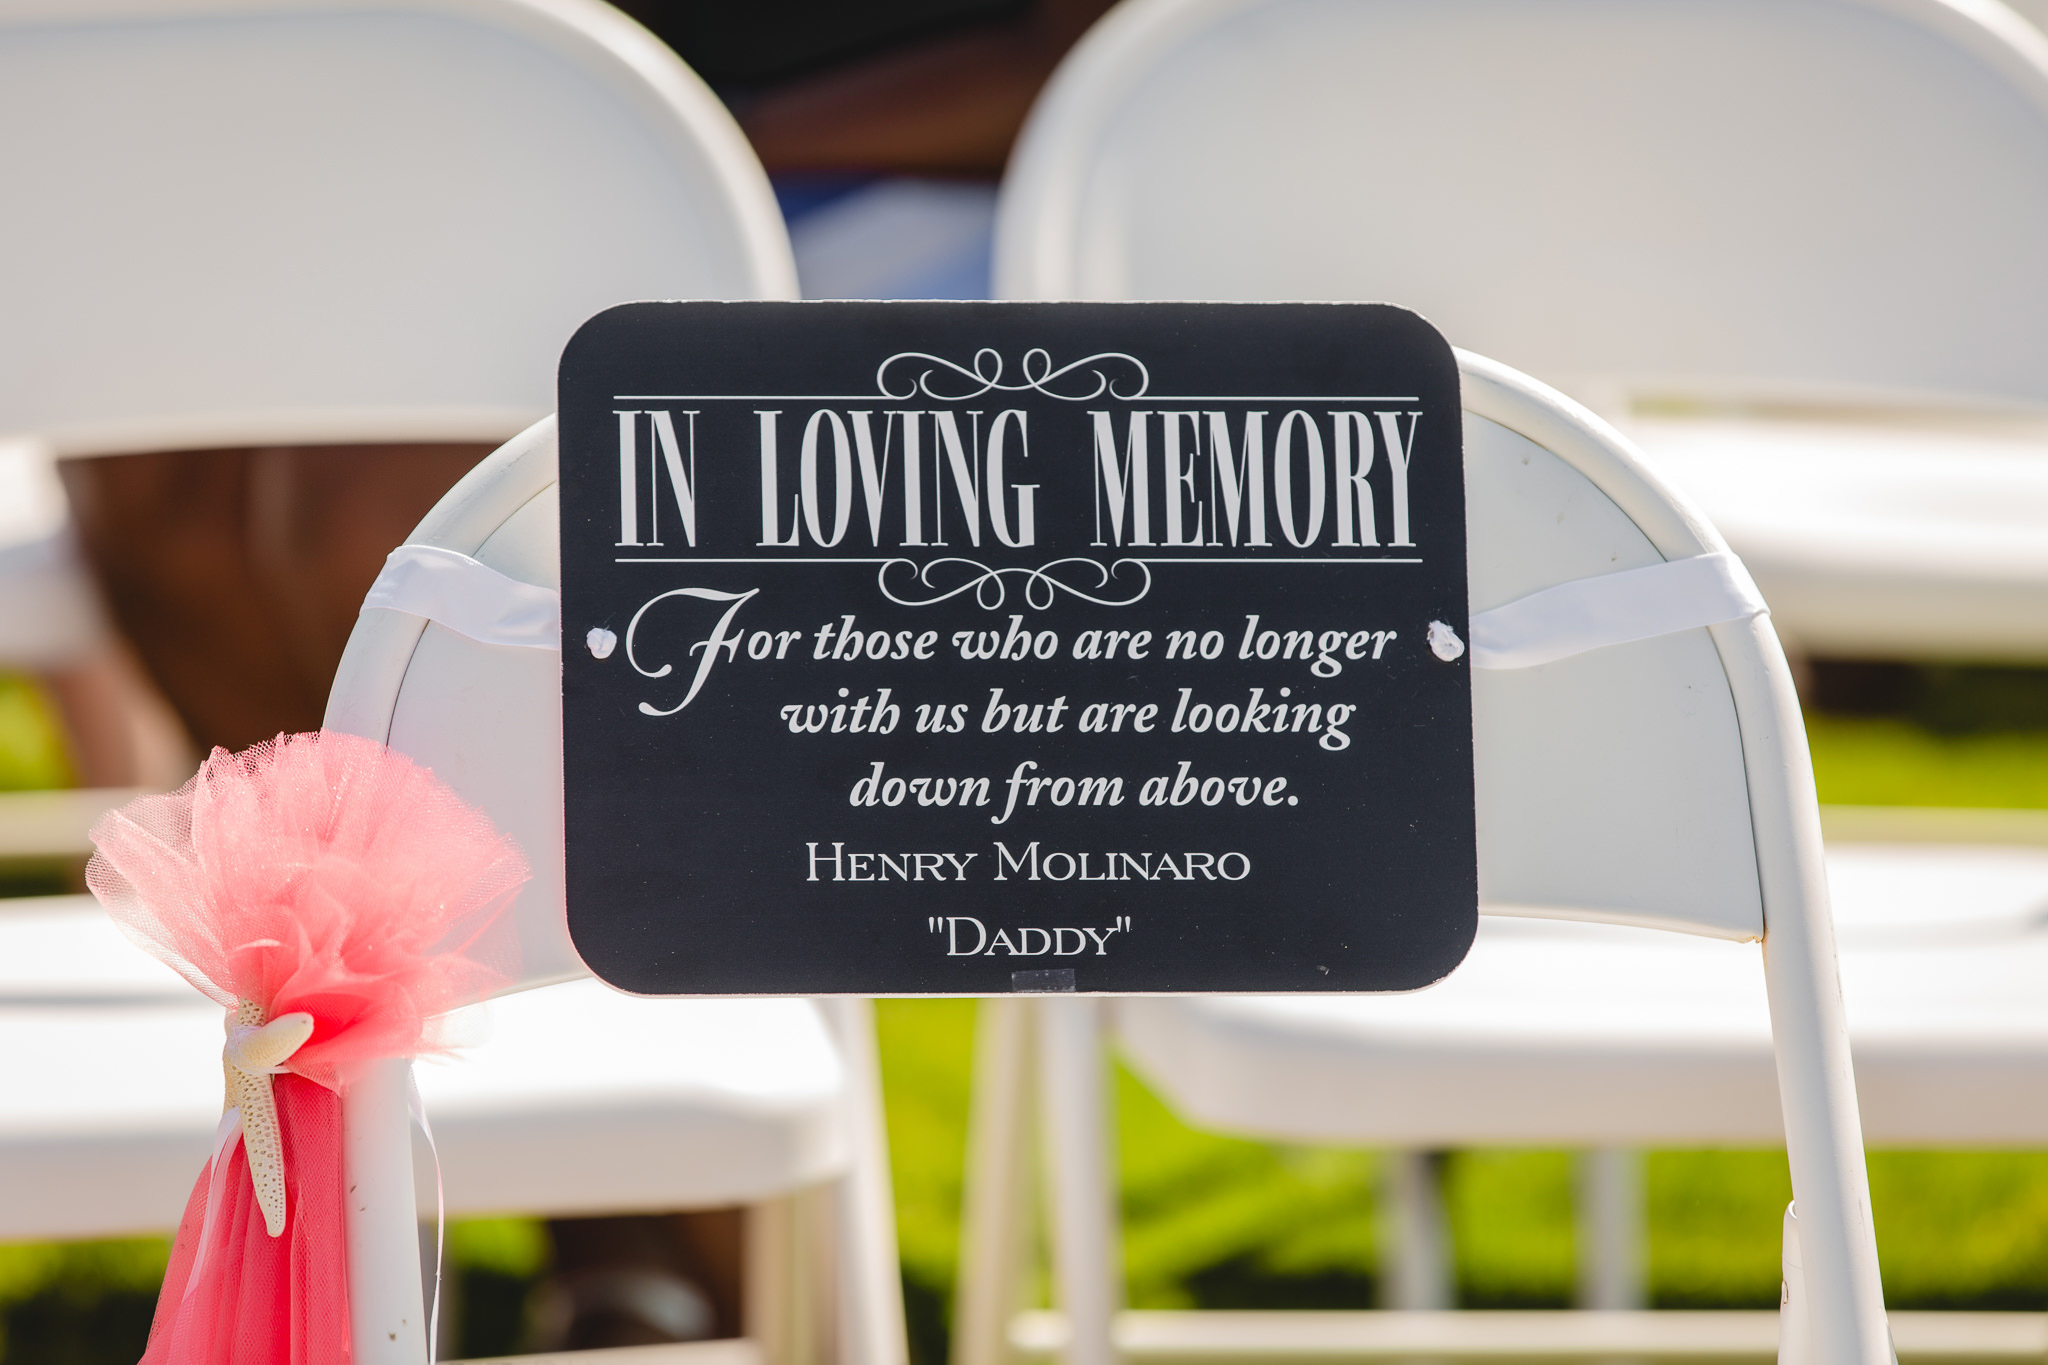 A memorial sign for the bride's father at her wedding ceremony